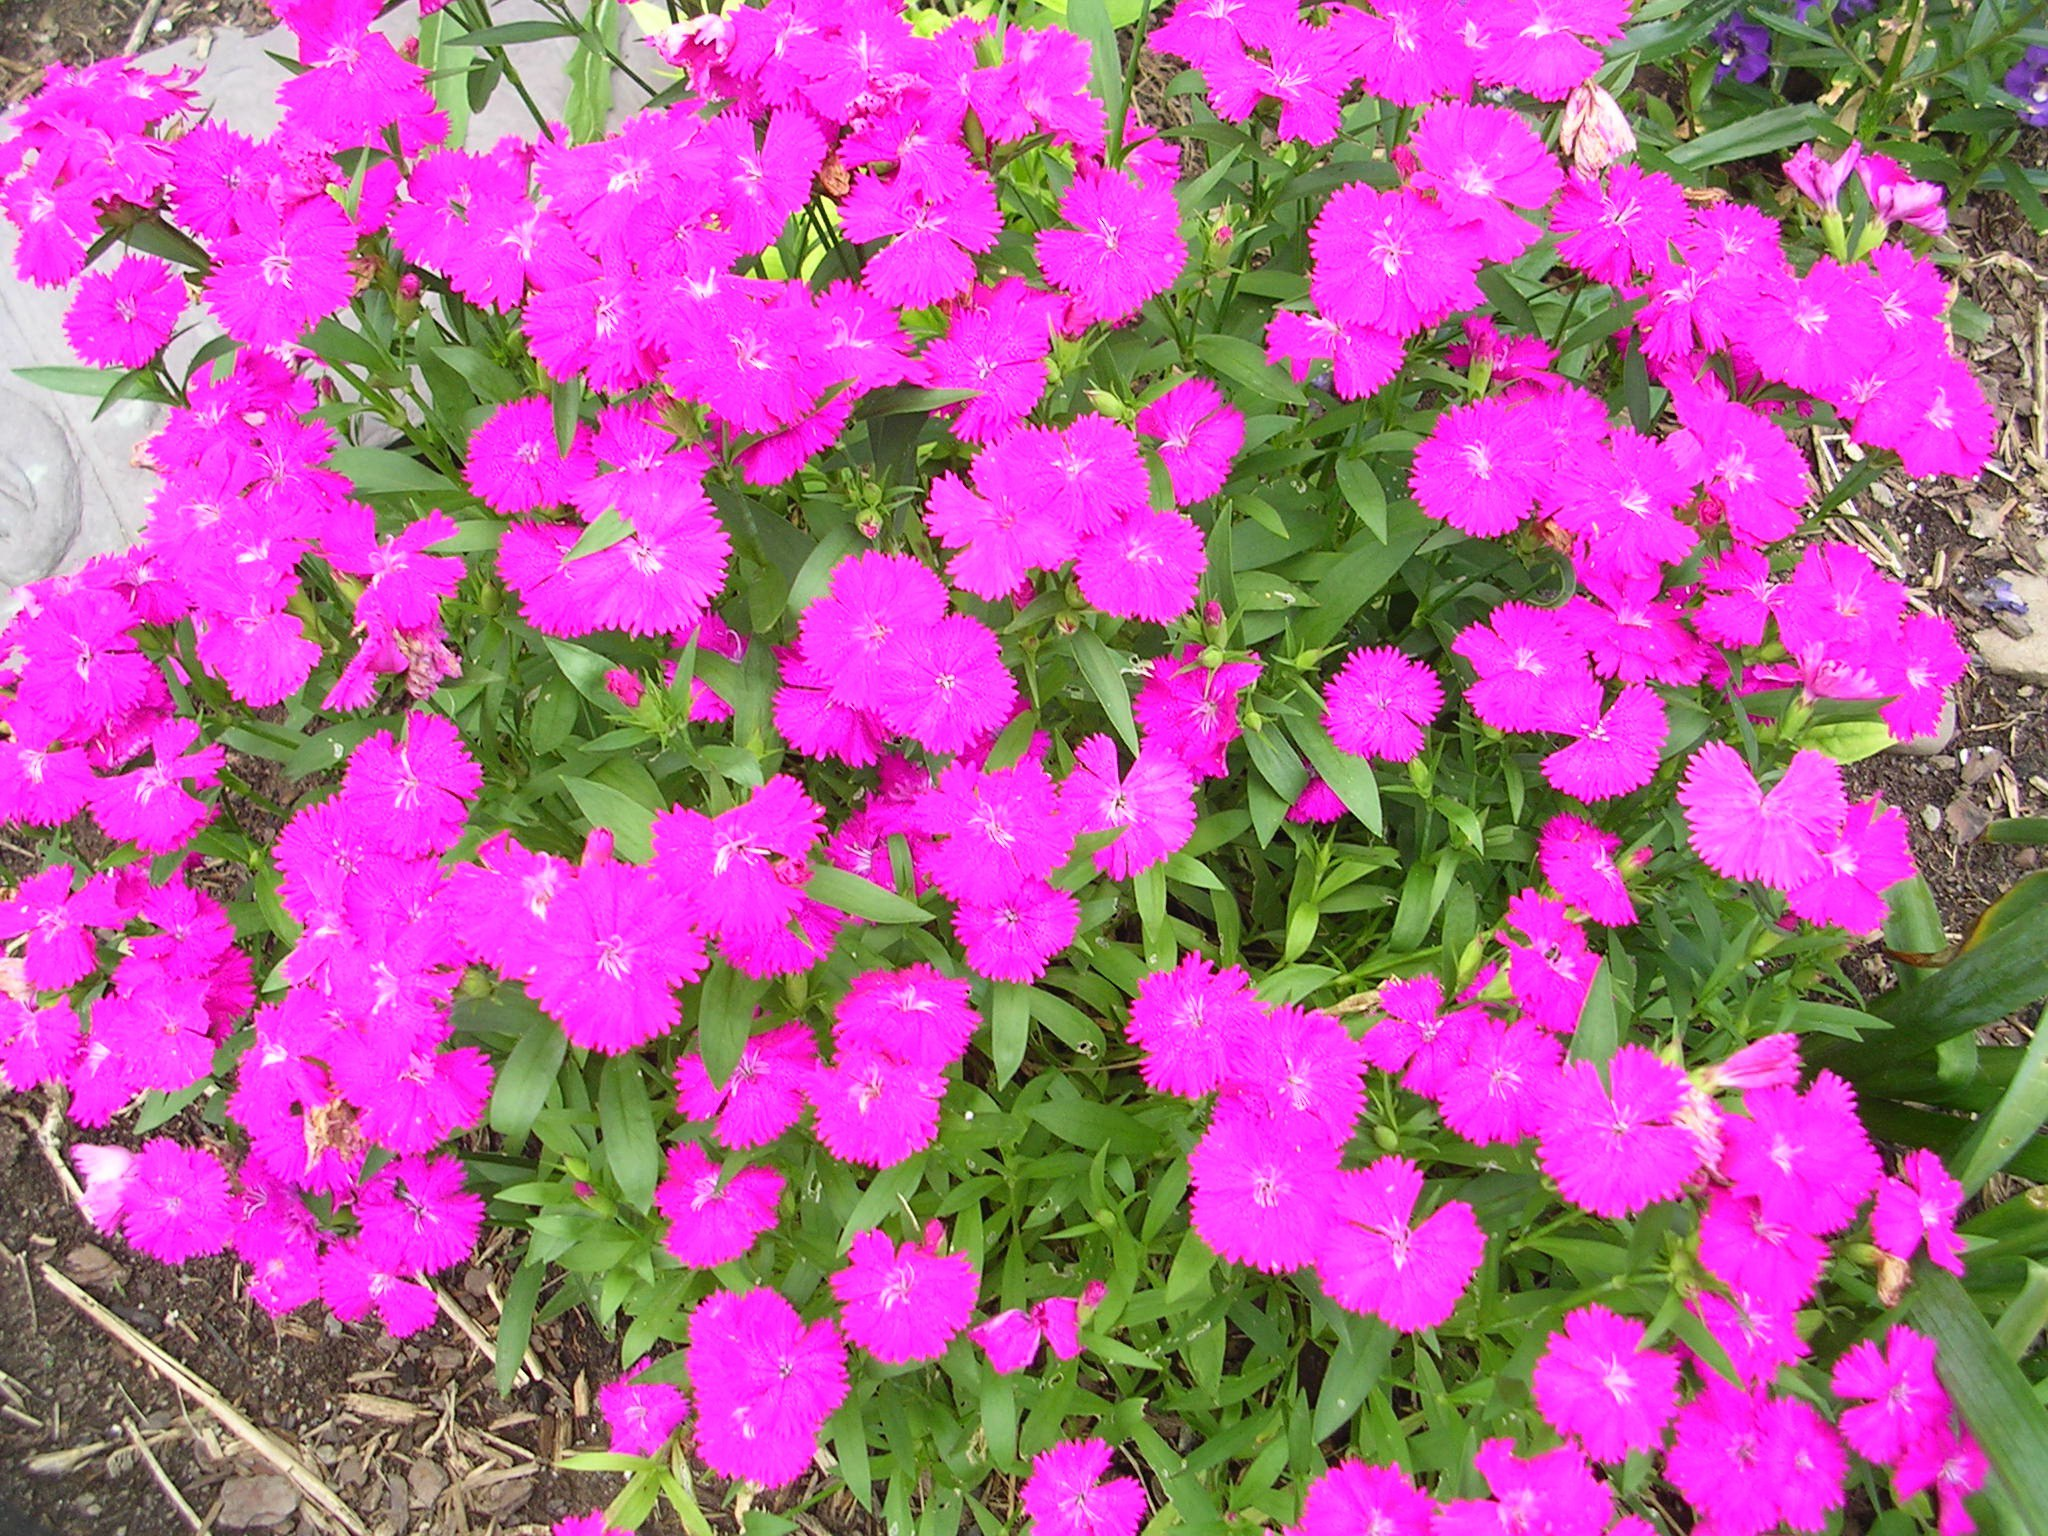 Roses In Garden: How To Grow: Pinks- Growing And Caring For Pinks Or Dianthus